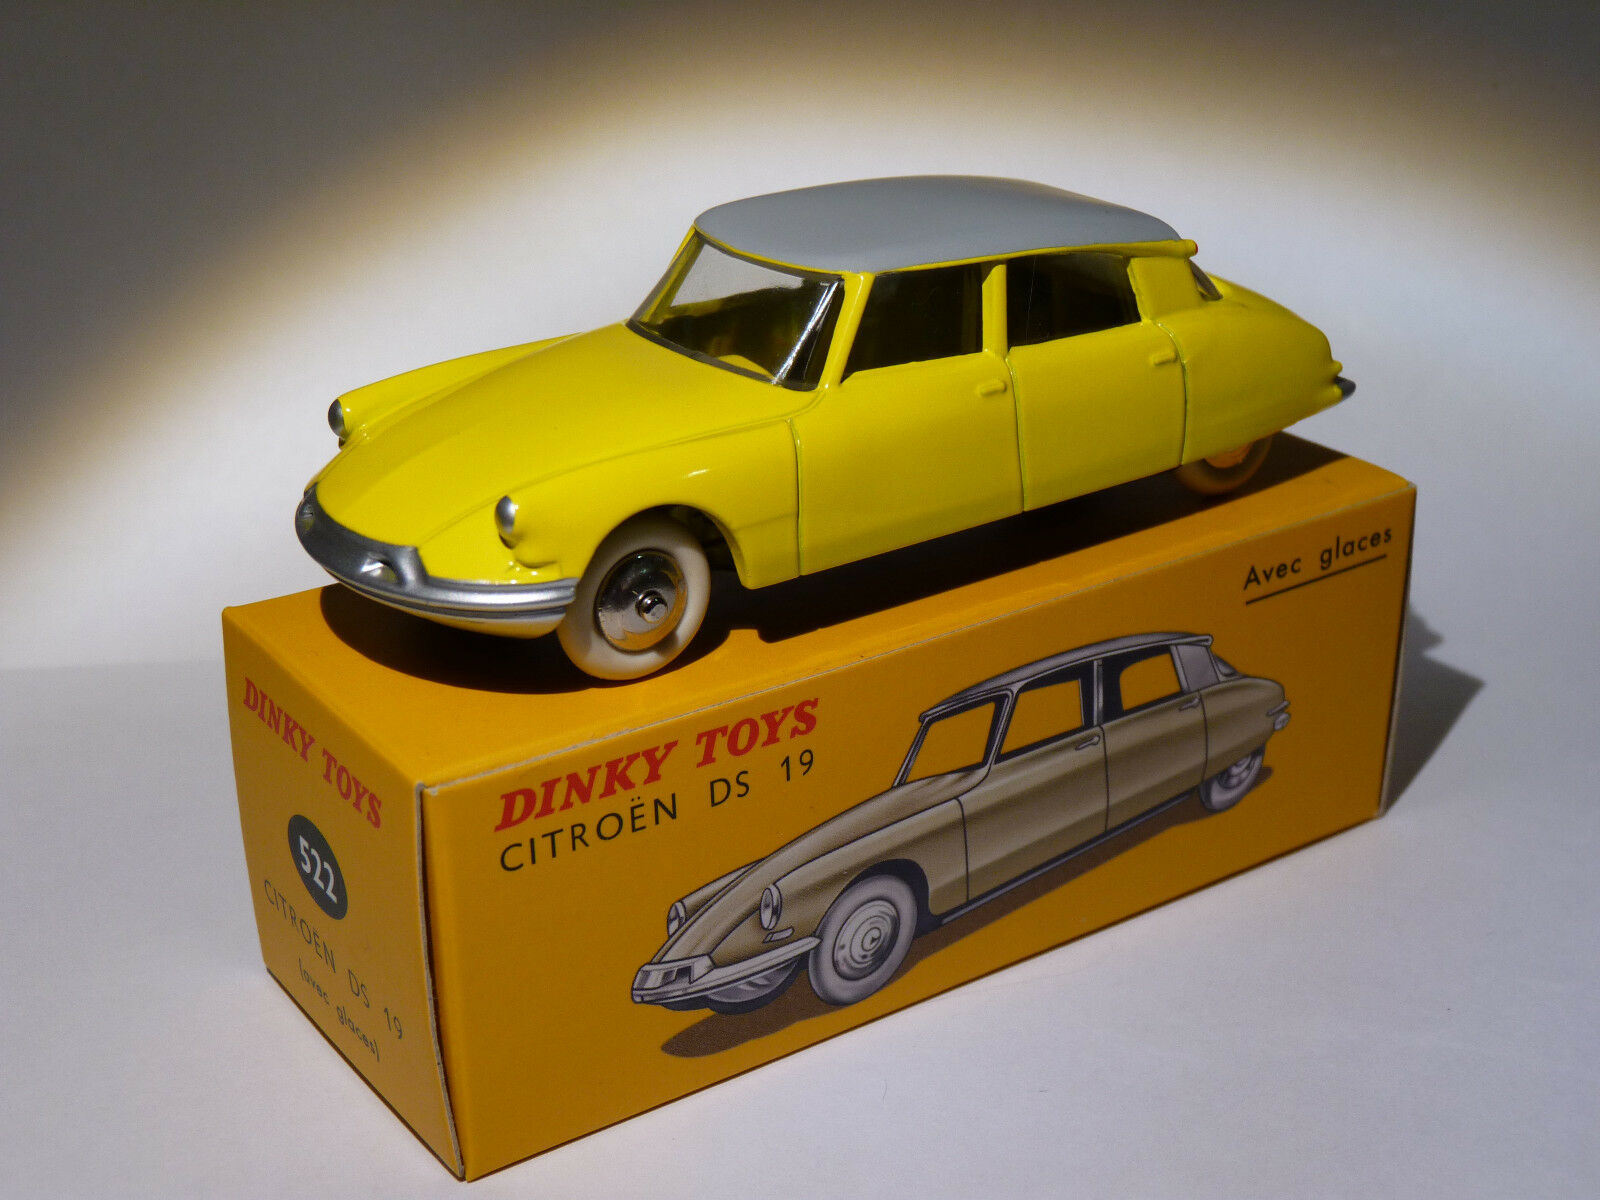 RARE citroen DS 19 yellow - ref 522 édition noel 2010 au 1 43 de dinky toys atlas